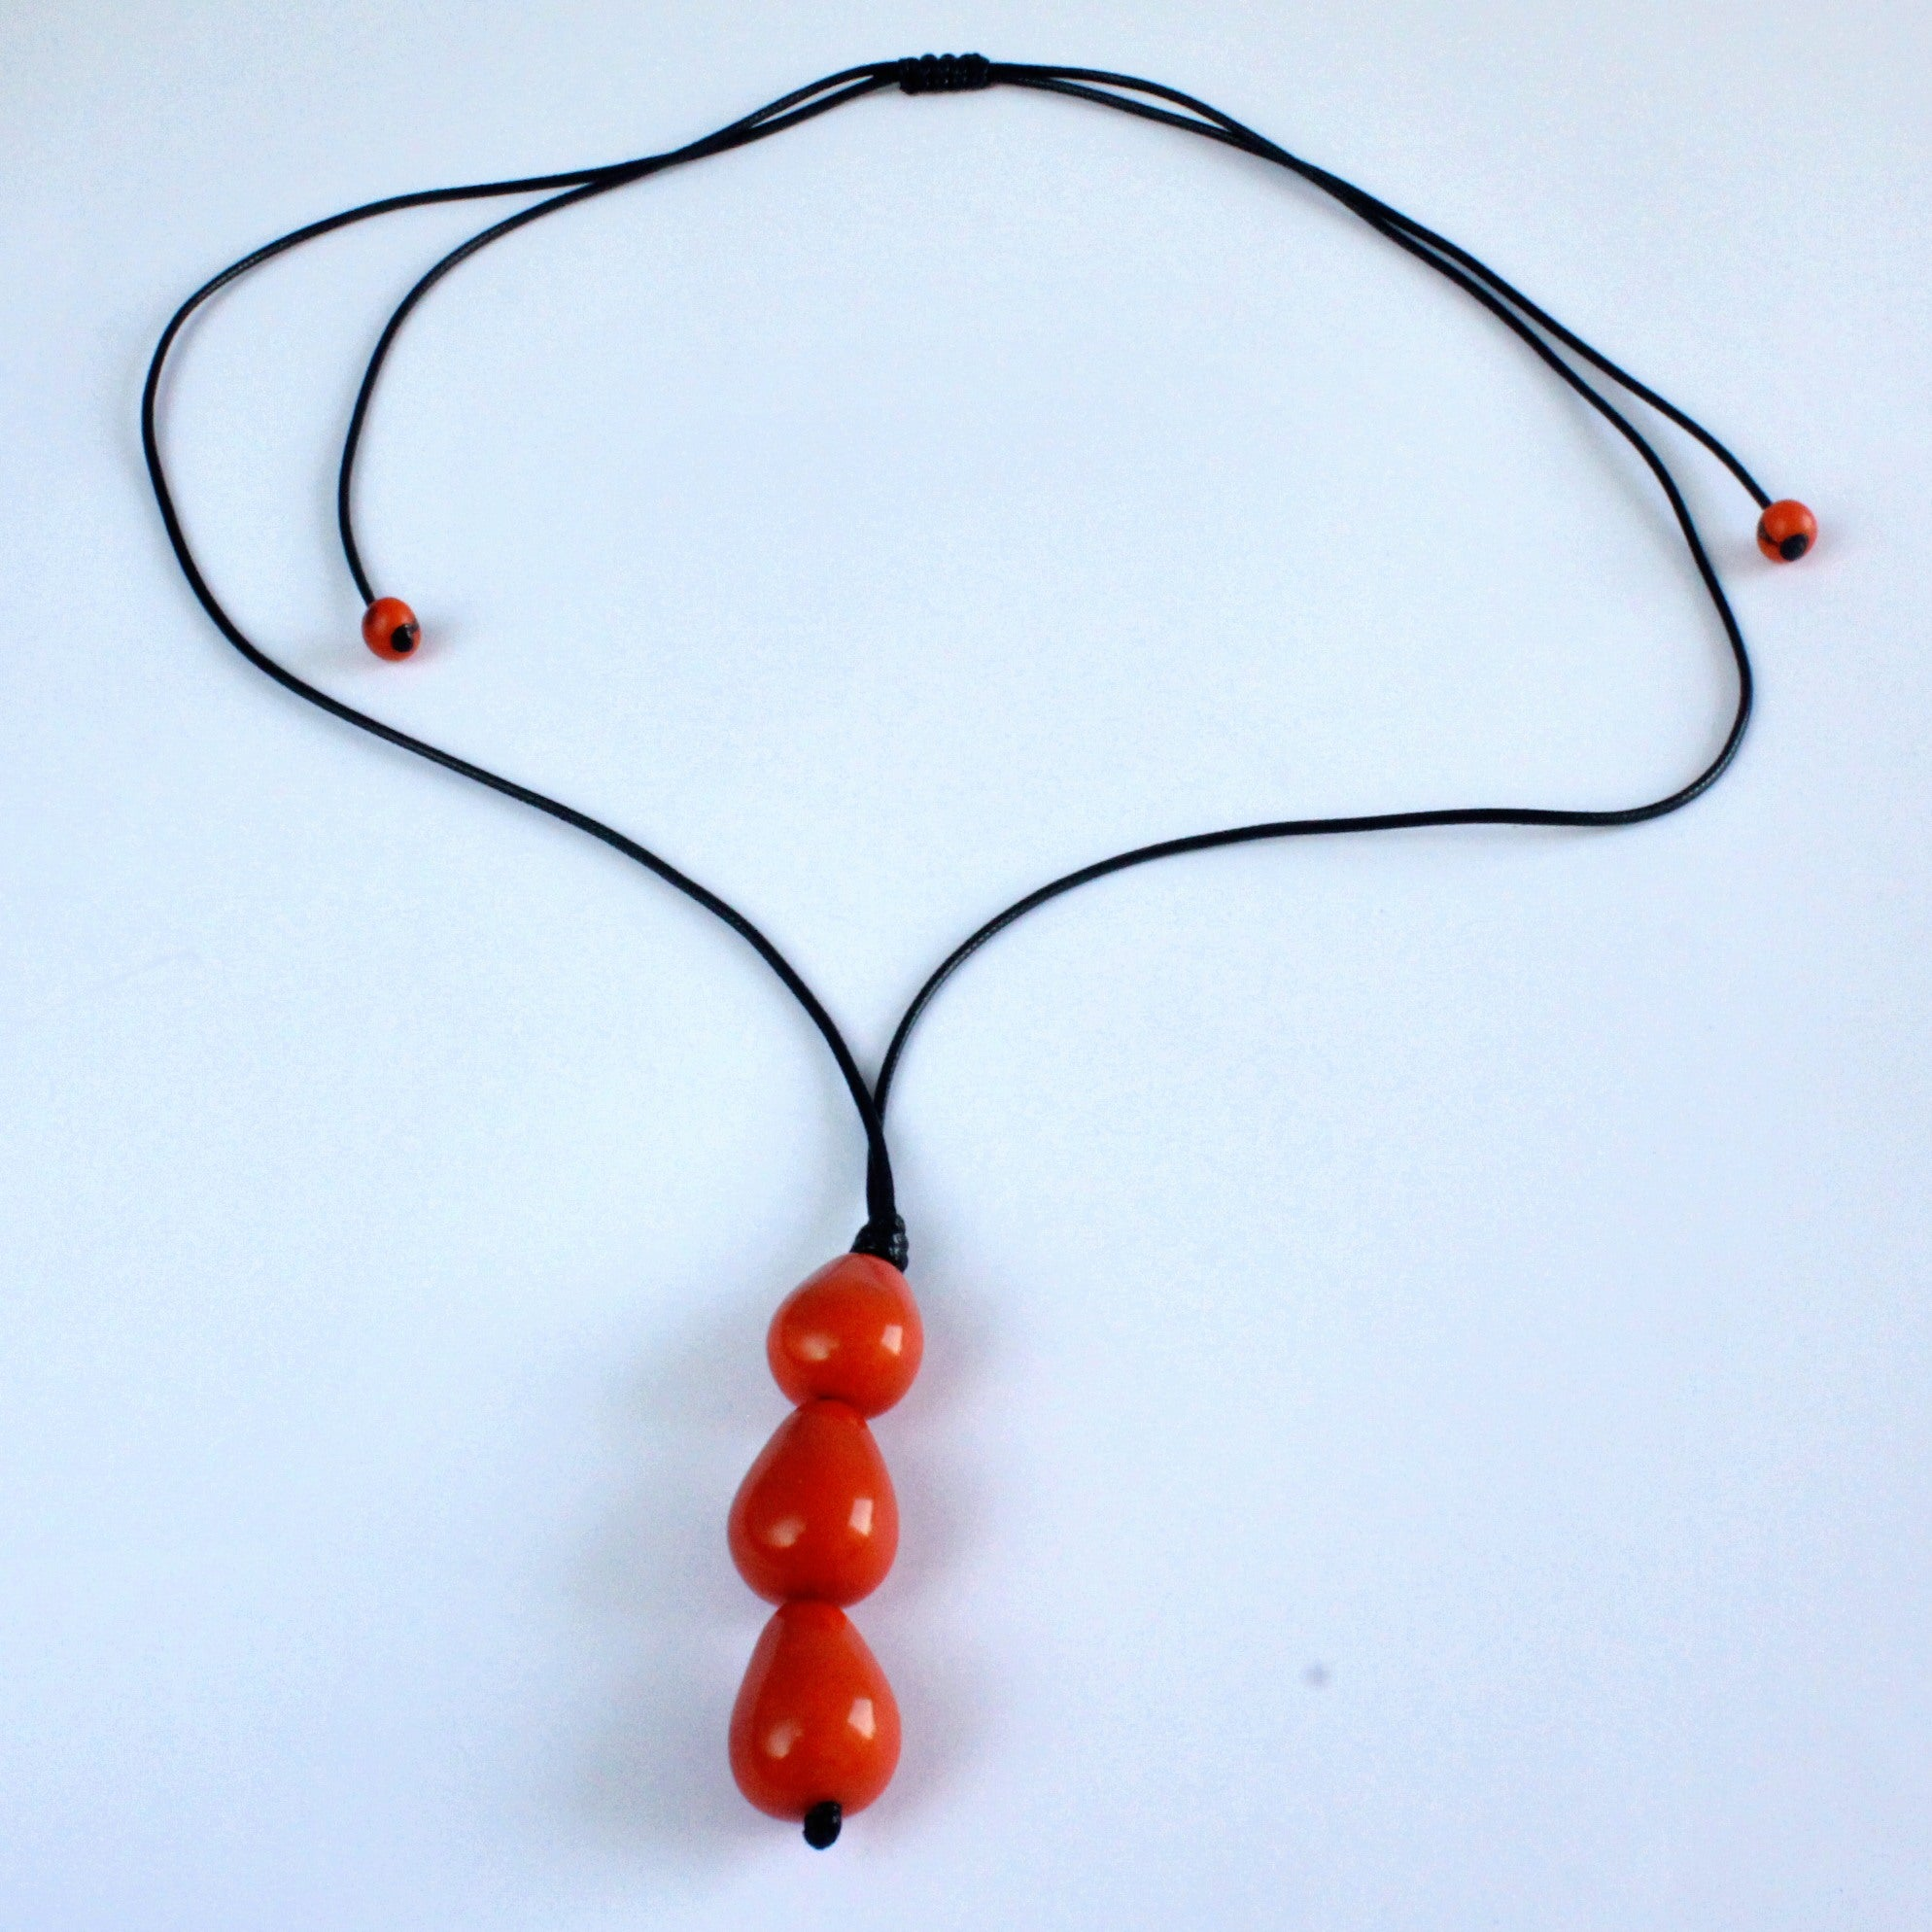 Necklace, handmade, sustainable tagua nut, orange